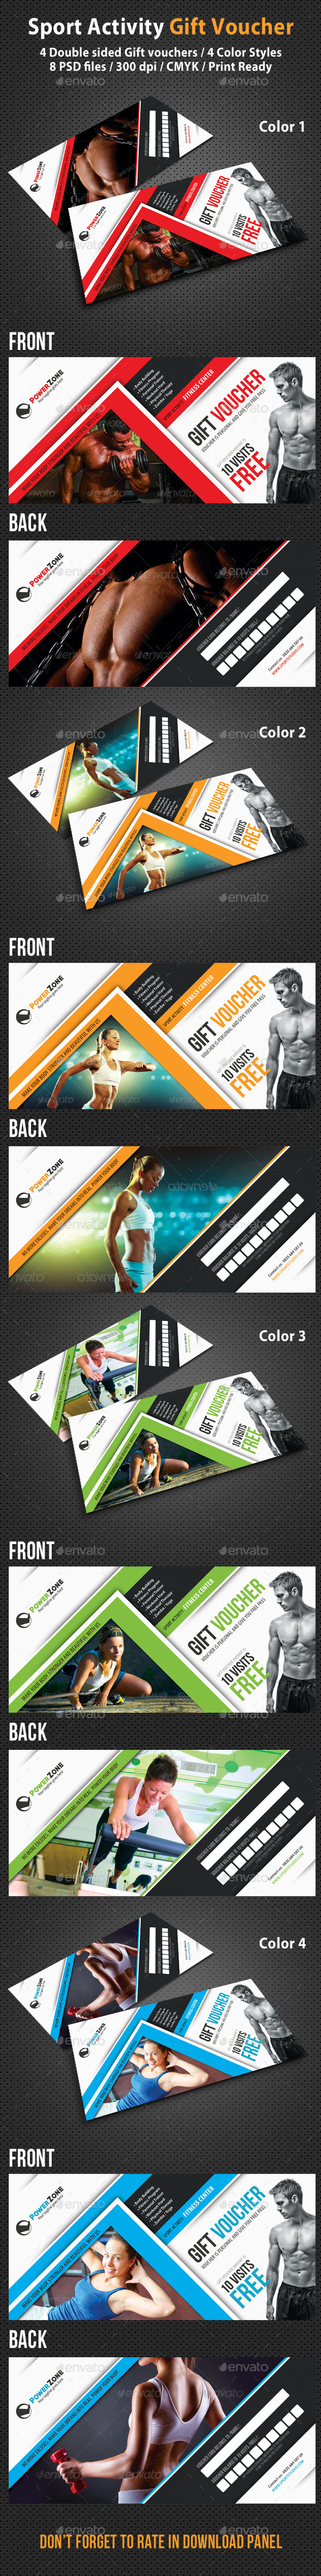 Sport Activity Gift Voucher 02 - Cards & Invites Print Templates